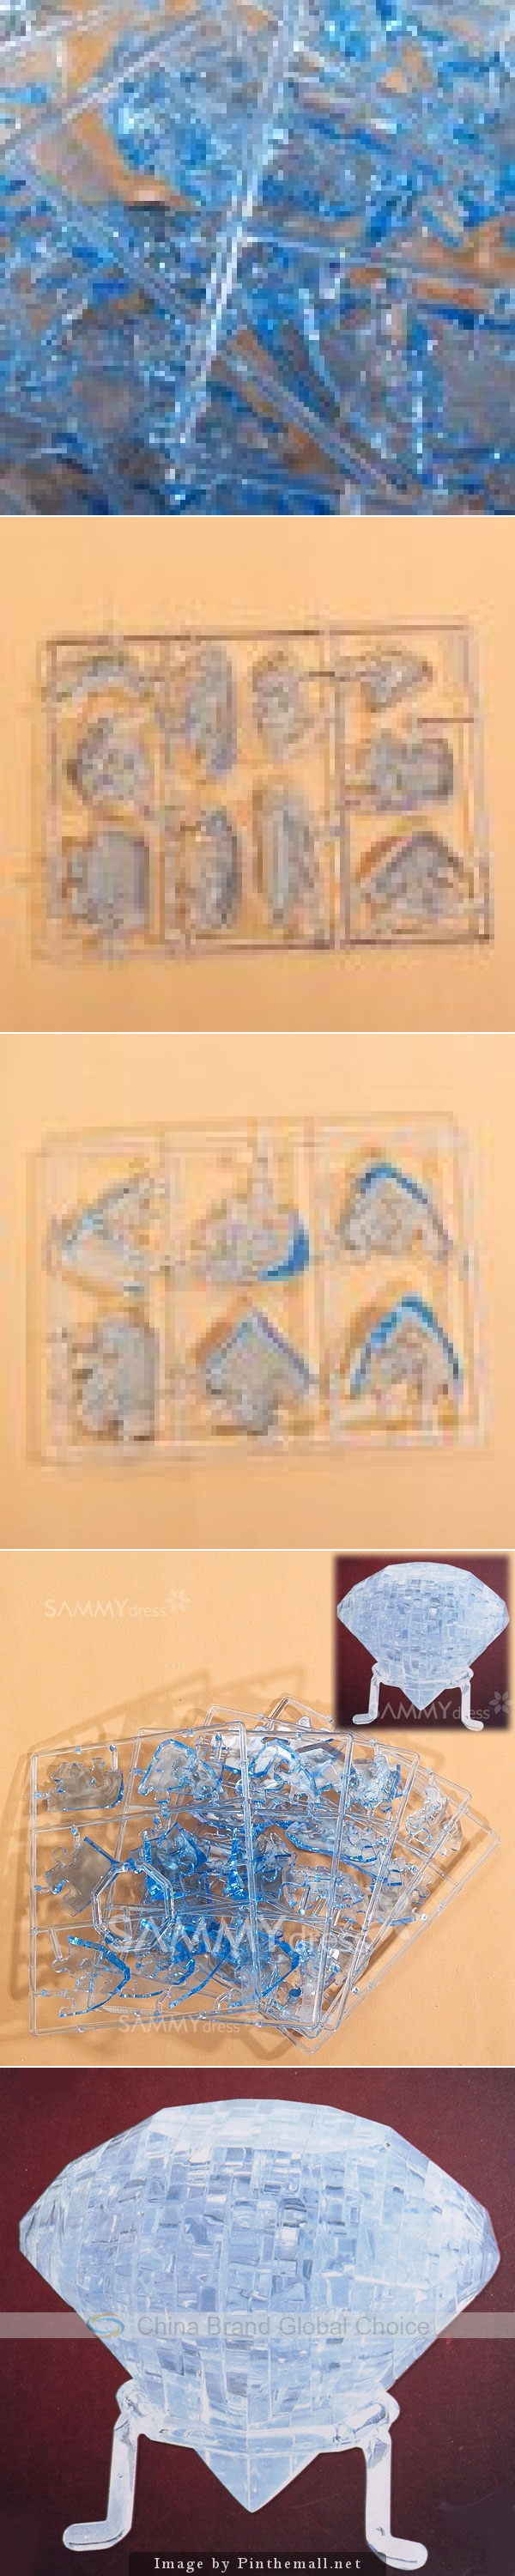 41PCS Pretty 3D Diamond Shaped DIY Crystal Decoration Puzzle IQ Toy - Blue